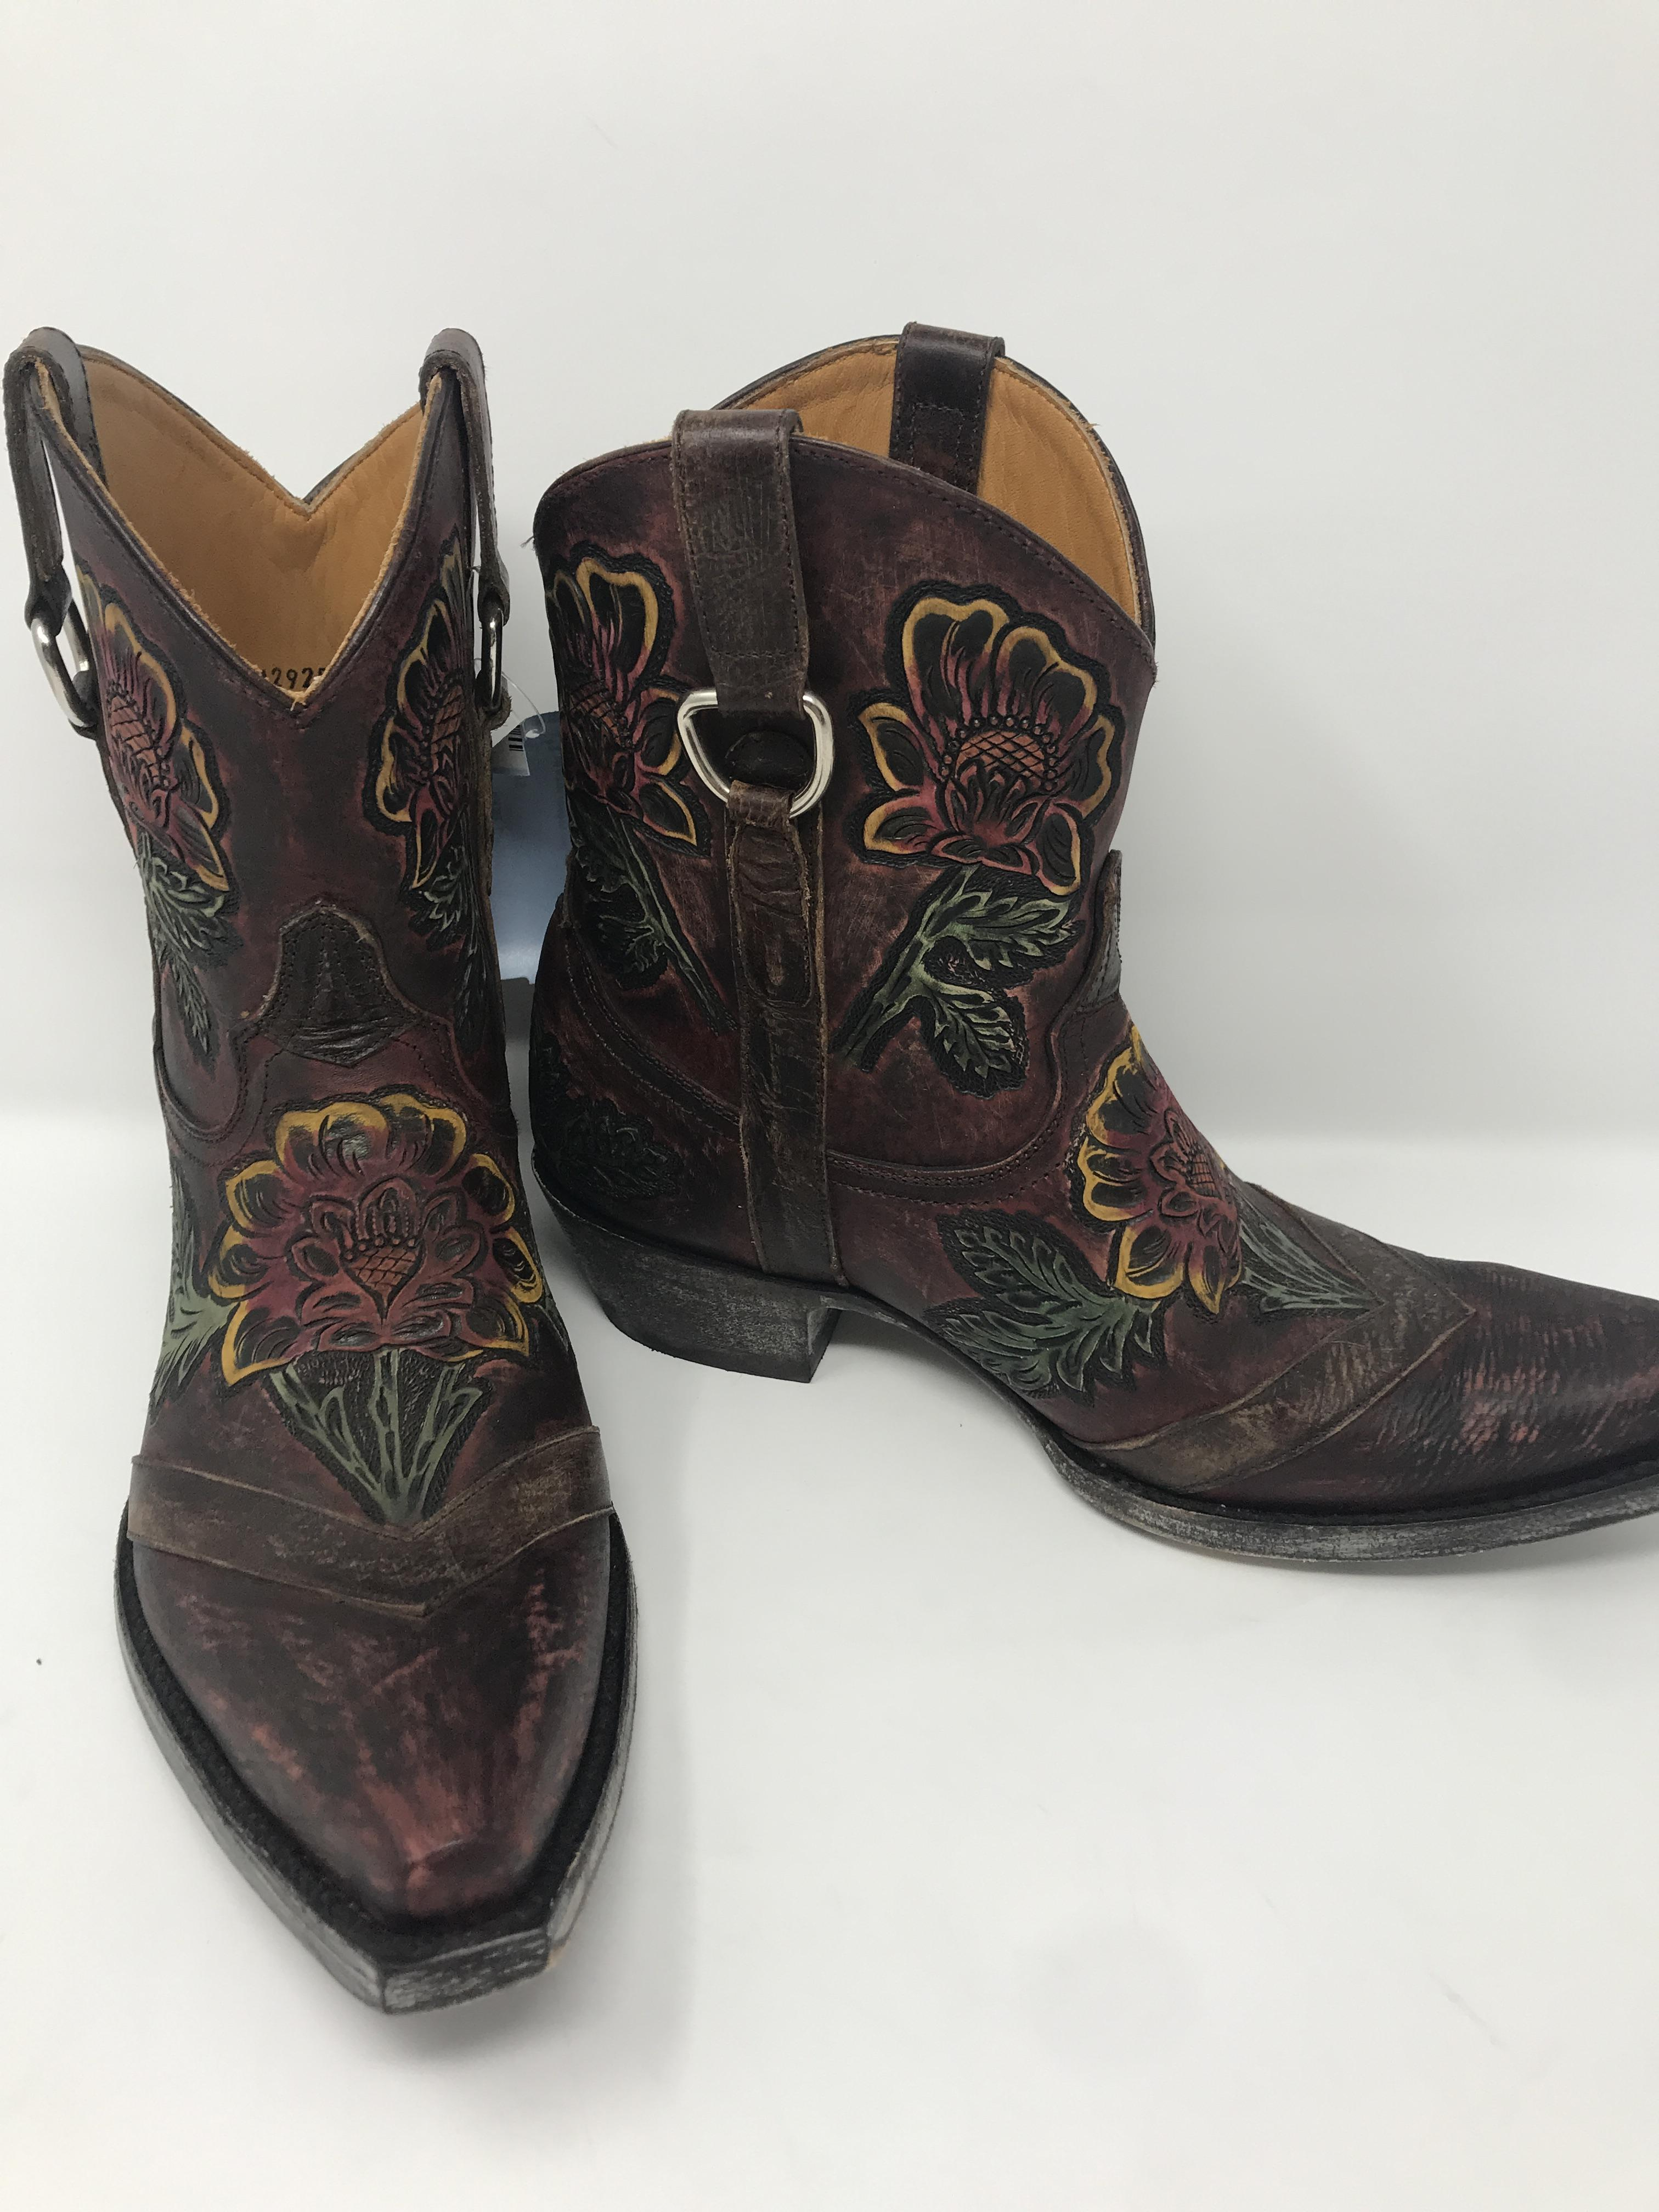 Old Gringo cowboy Shoes Price: $186.99